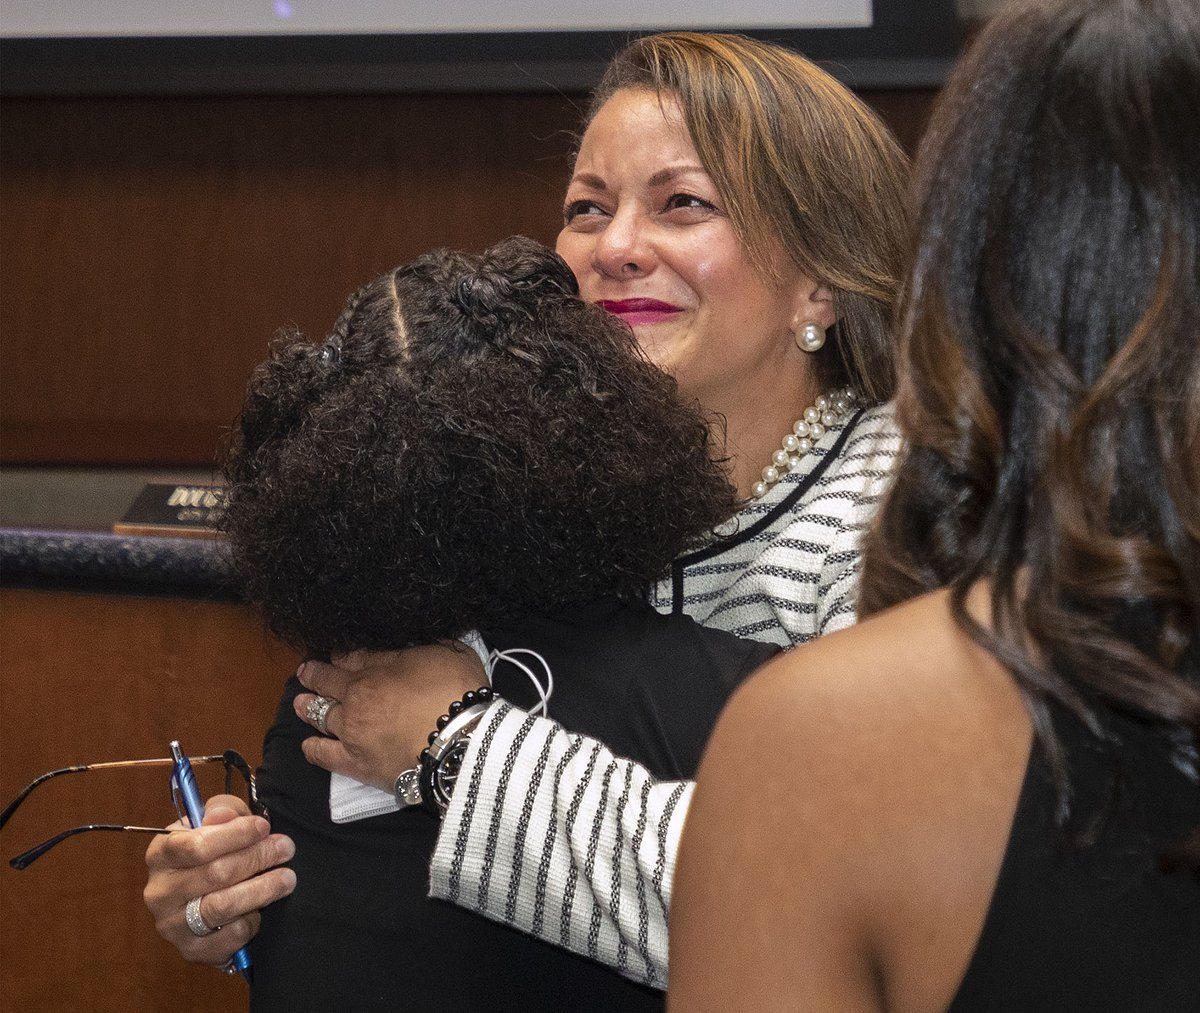 At the Aug 12th Council meeting, Councilwoman Michelle Cooper Kelly was surprised by Council, family, and friends with the liveSAFE Woman of the Year Award. We are honored to have Michelle Cooper Kelly serve as a member of our City Council!